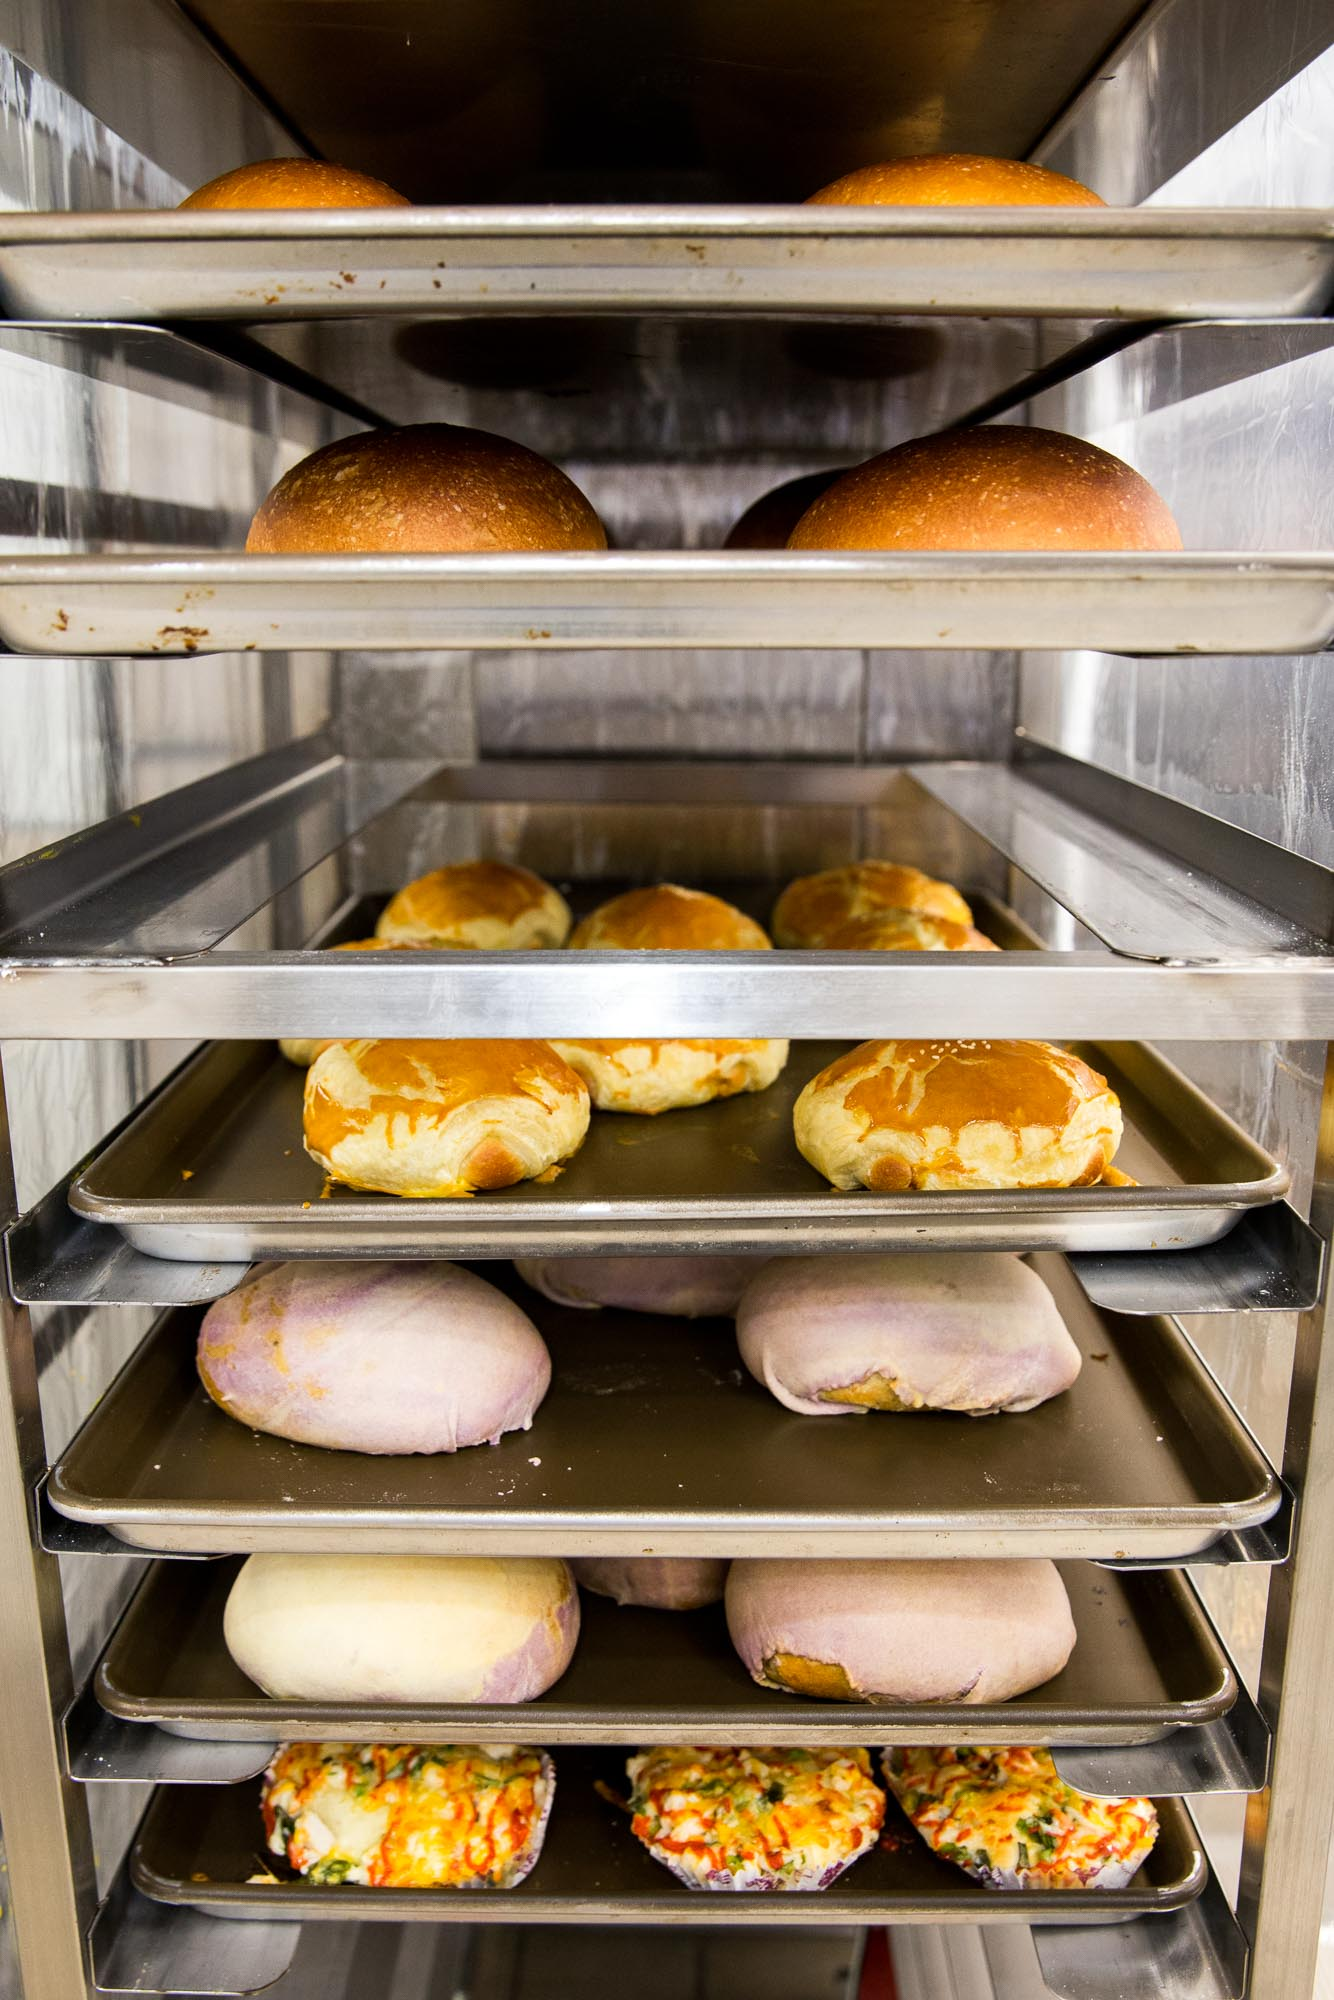 Blue Ribbon Bakery Kitchen Witness The Cream Filled Chaos At 85a0c Bakery Eater Seattle